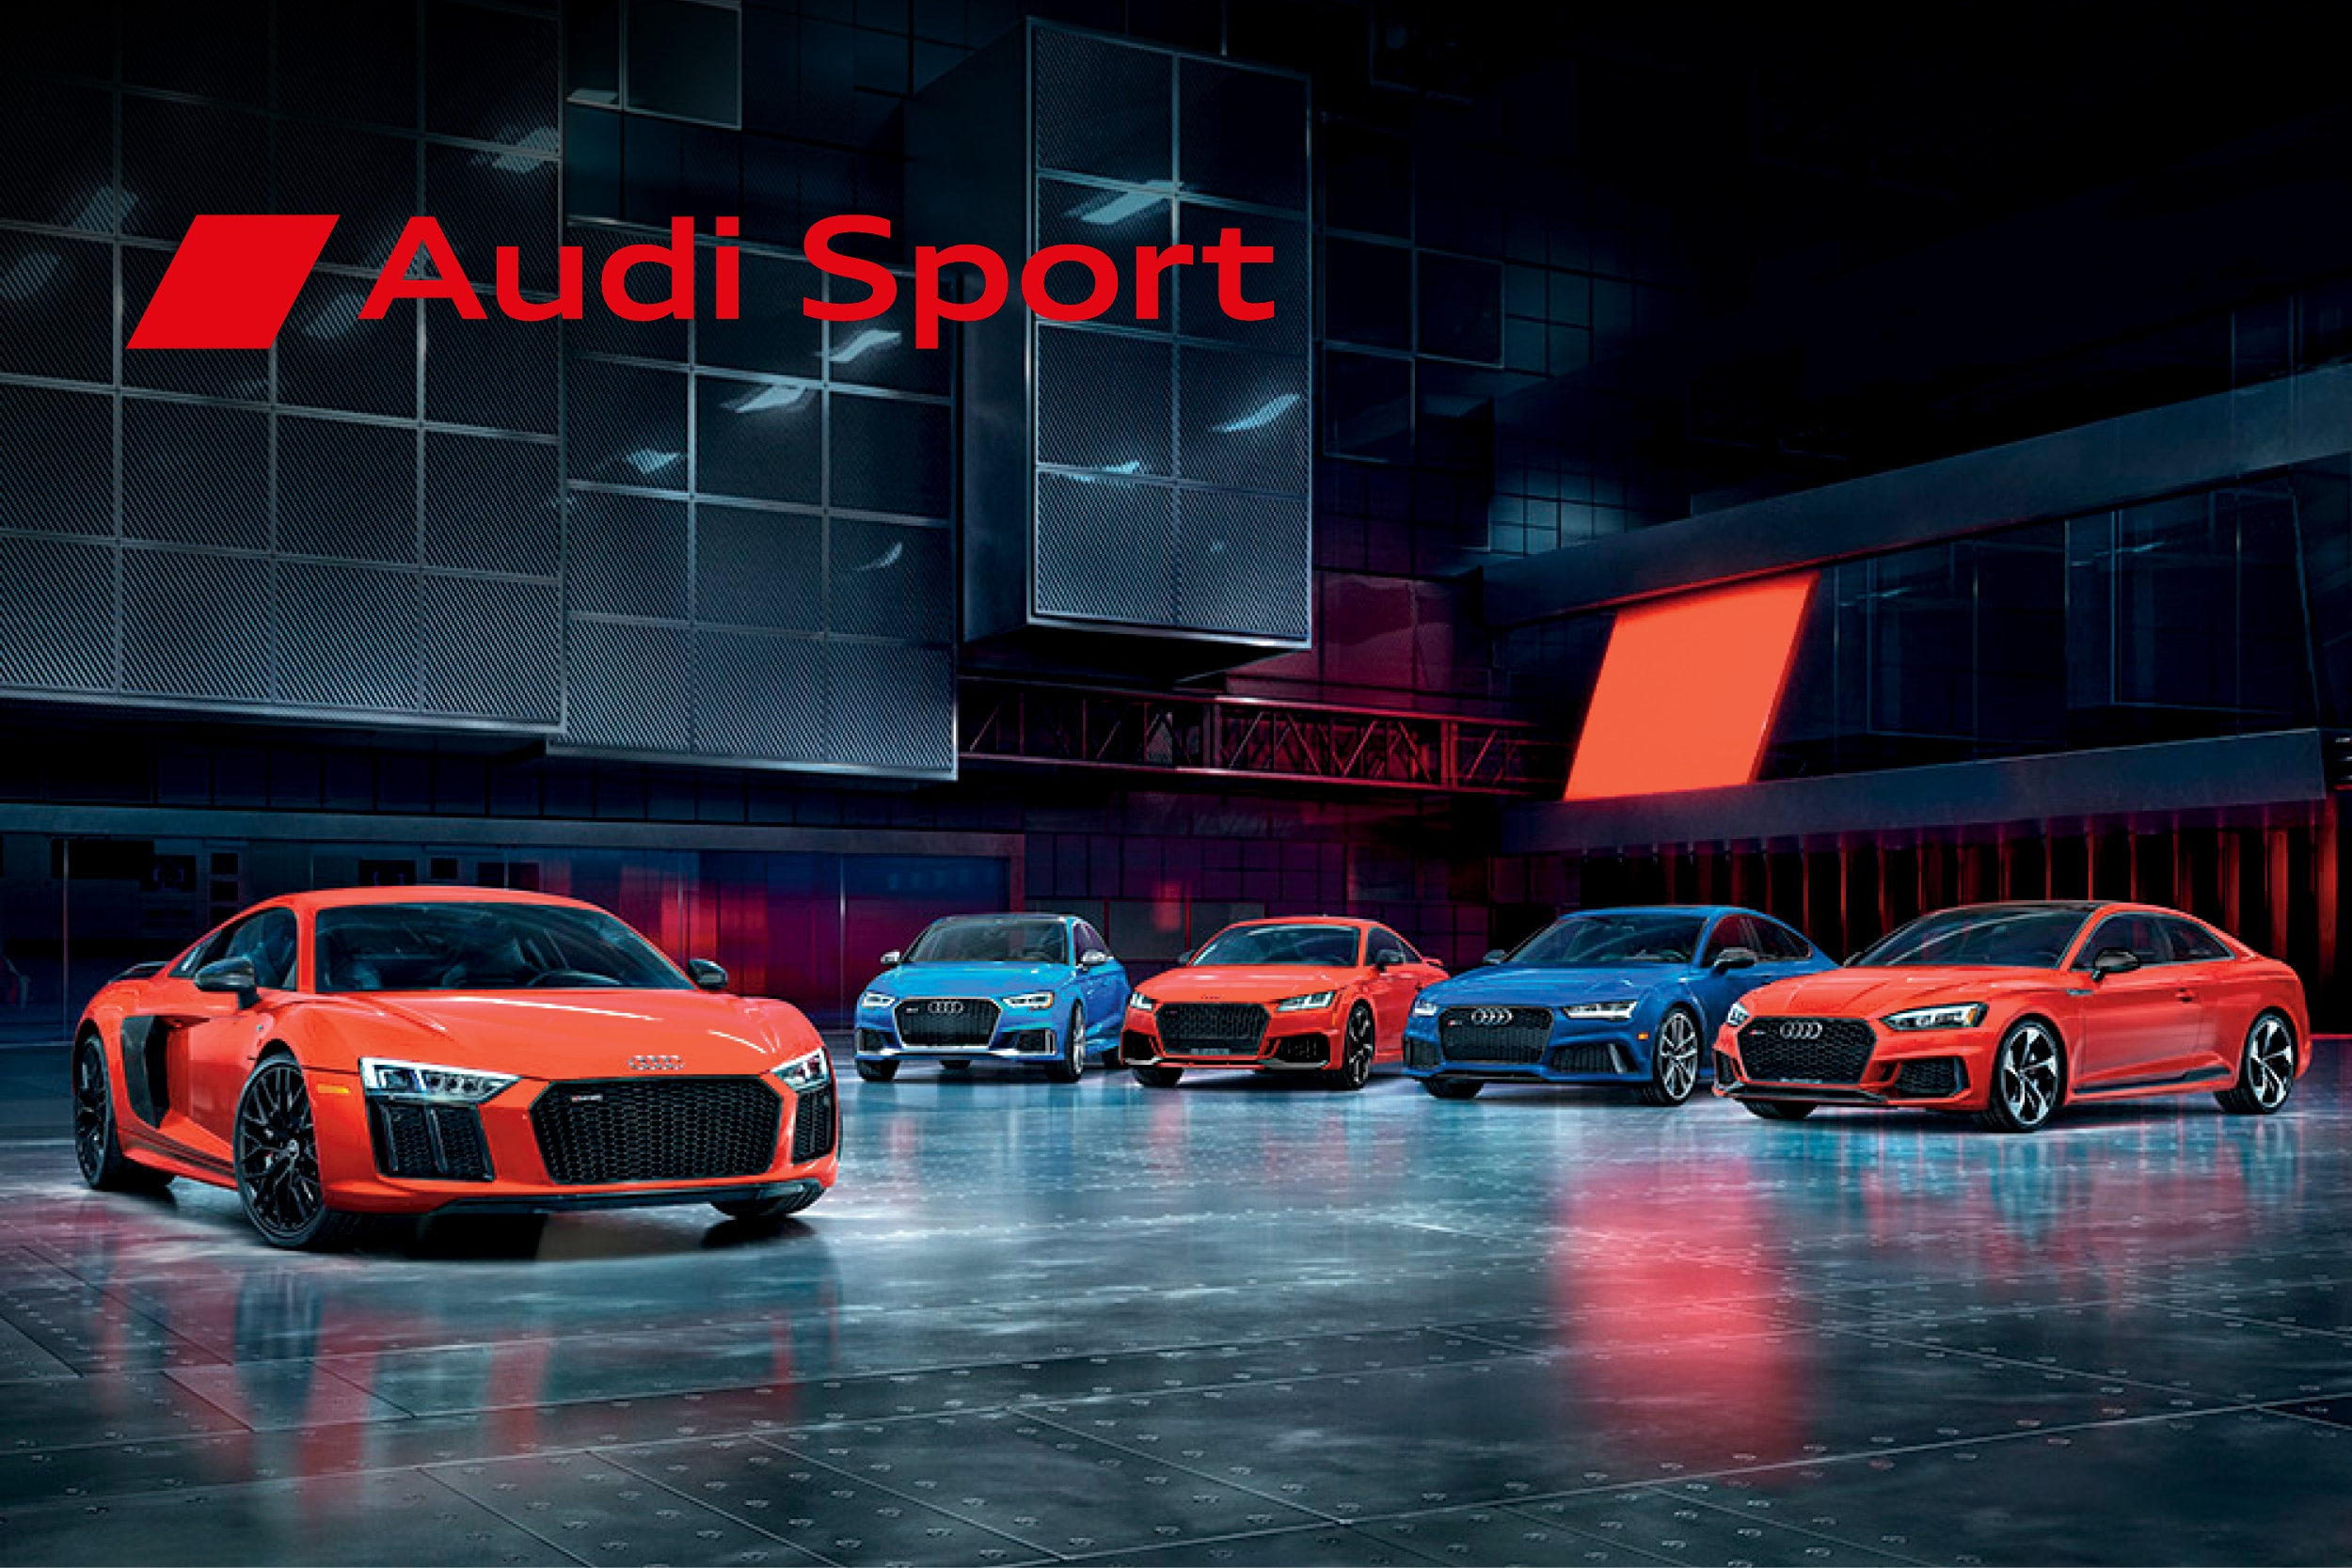 Audi sport models brochure showing off the new Audi R8 and Audi TT